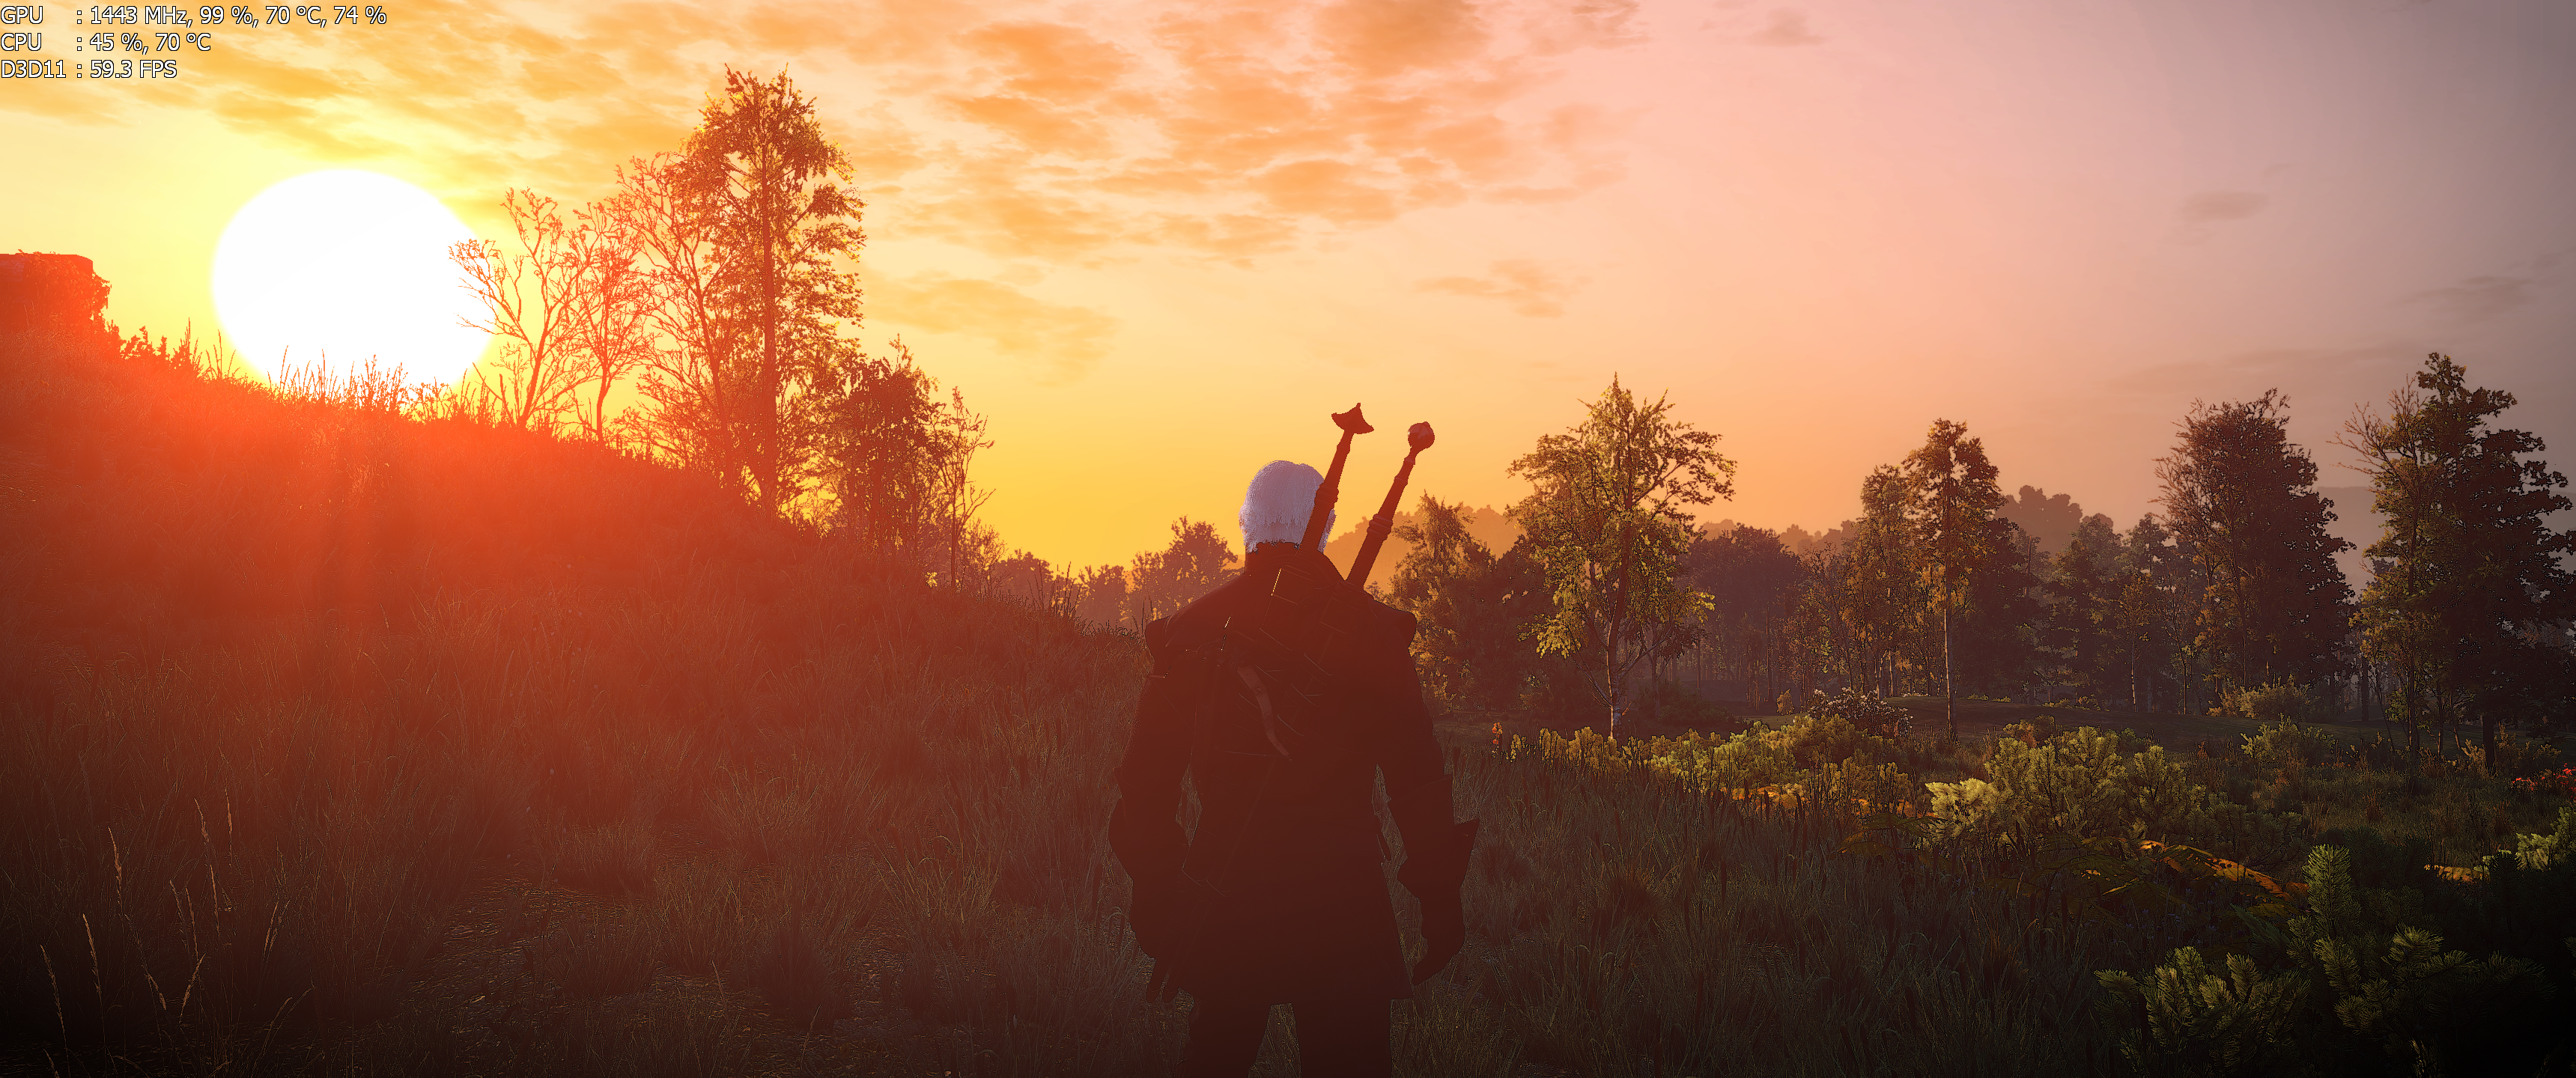 The Witcher 3 Screenshot 2017.11.18 - 20.54.43.21.png - Witcher 3: Wild Hunt, the